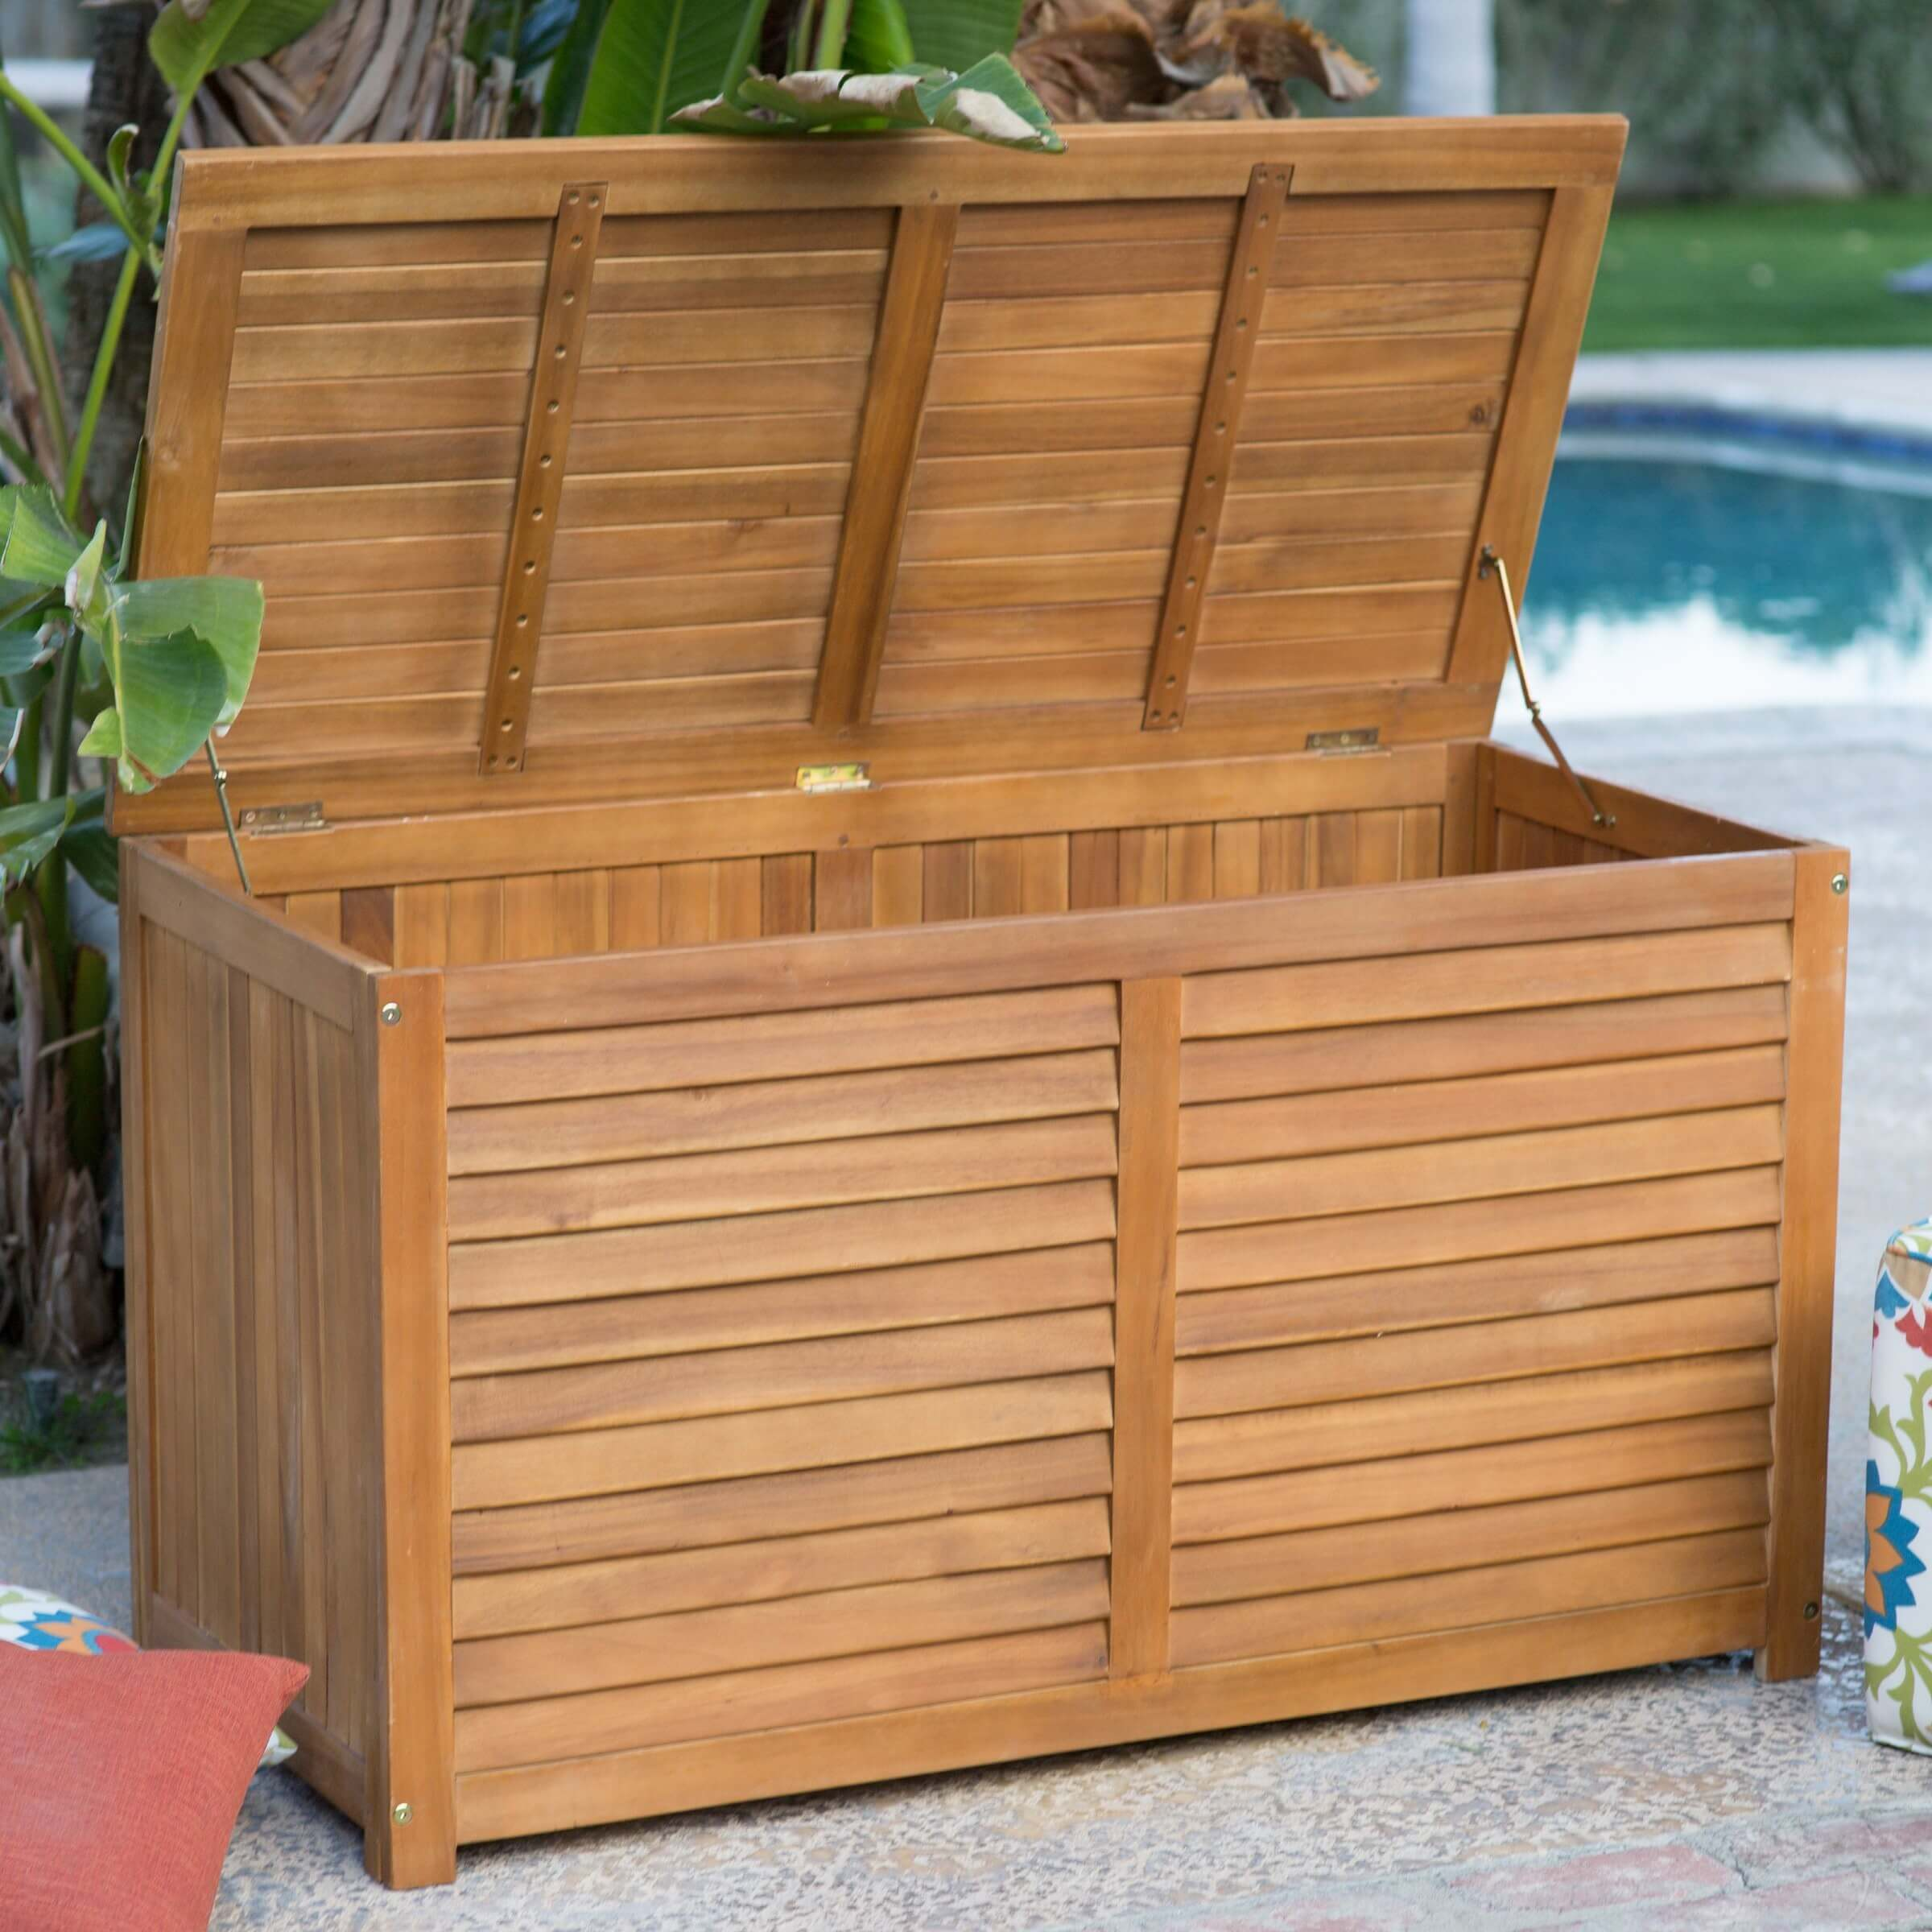 Designed with a slat construction for ventilation this acacia wood storage box has a natural : waterproof outdoor storage box  - Aquiesqueretaro.Com